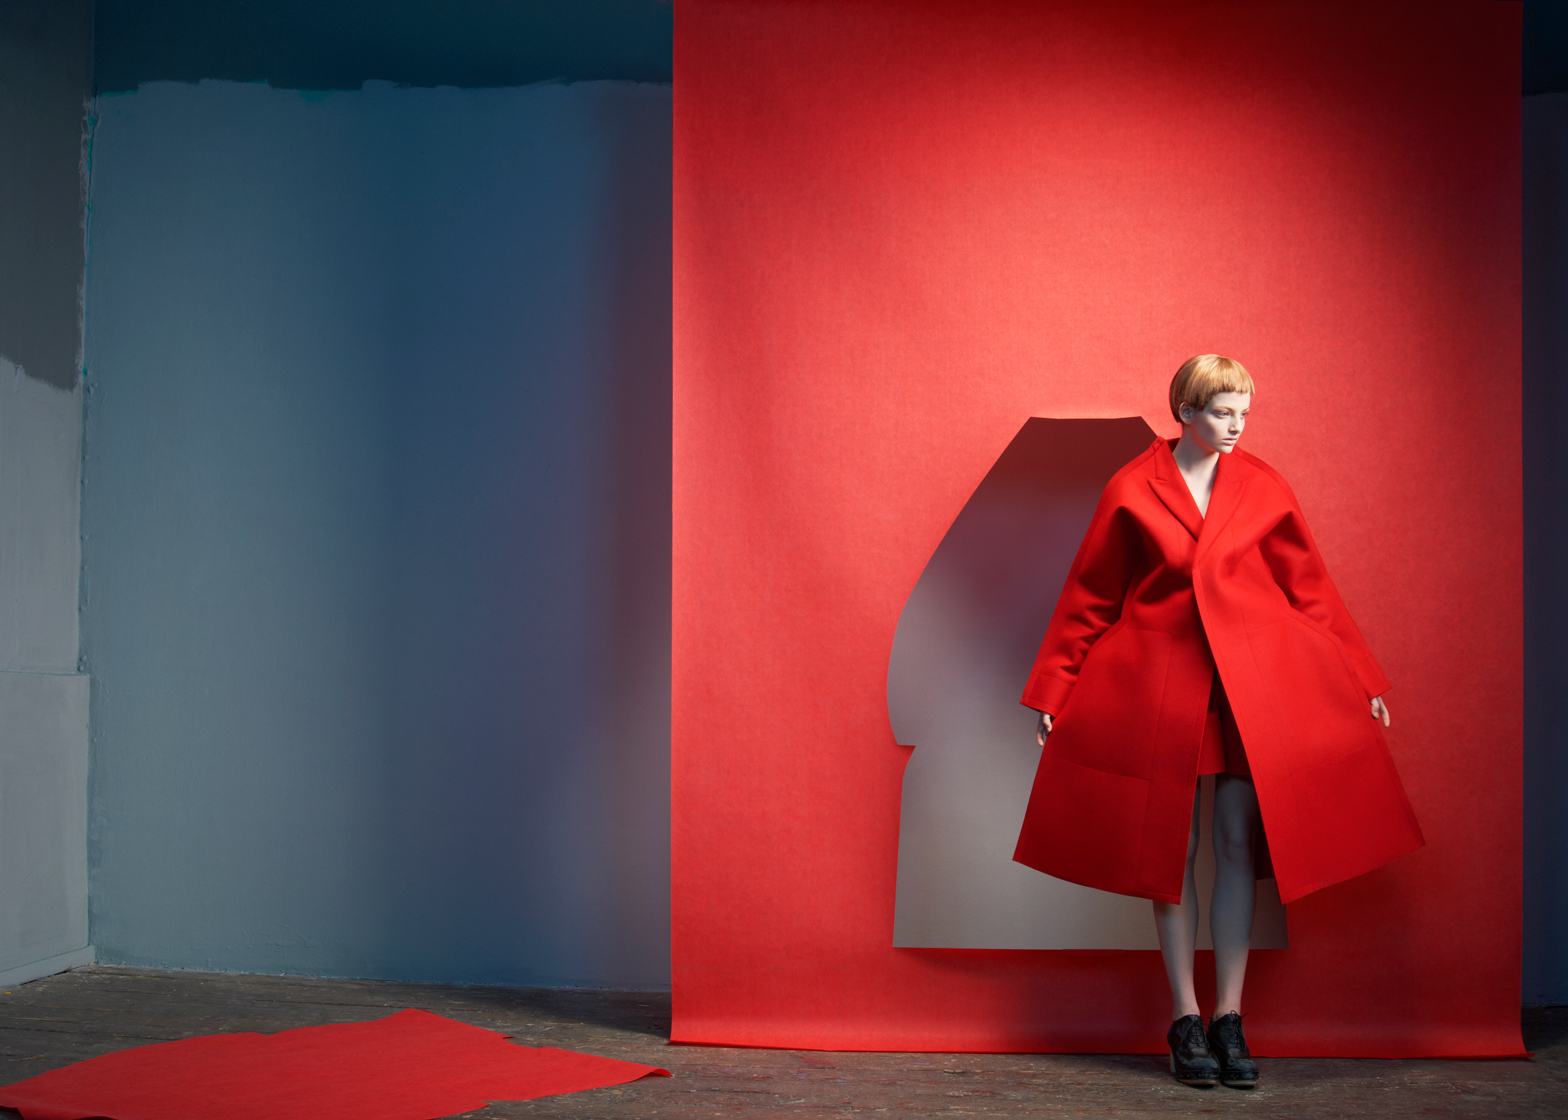 game-changers-reinventing-the-20th-century-silhouette-momu-antwerp_dezeen_ban